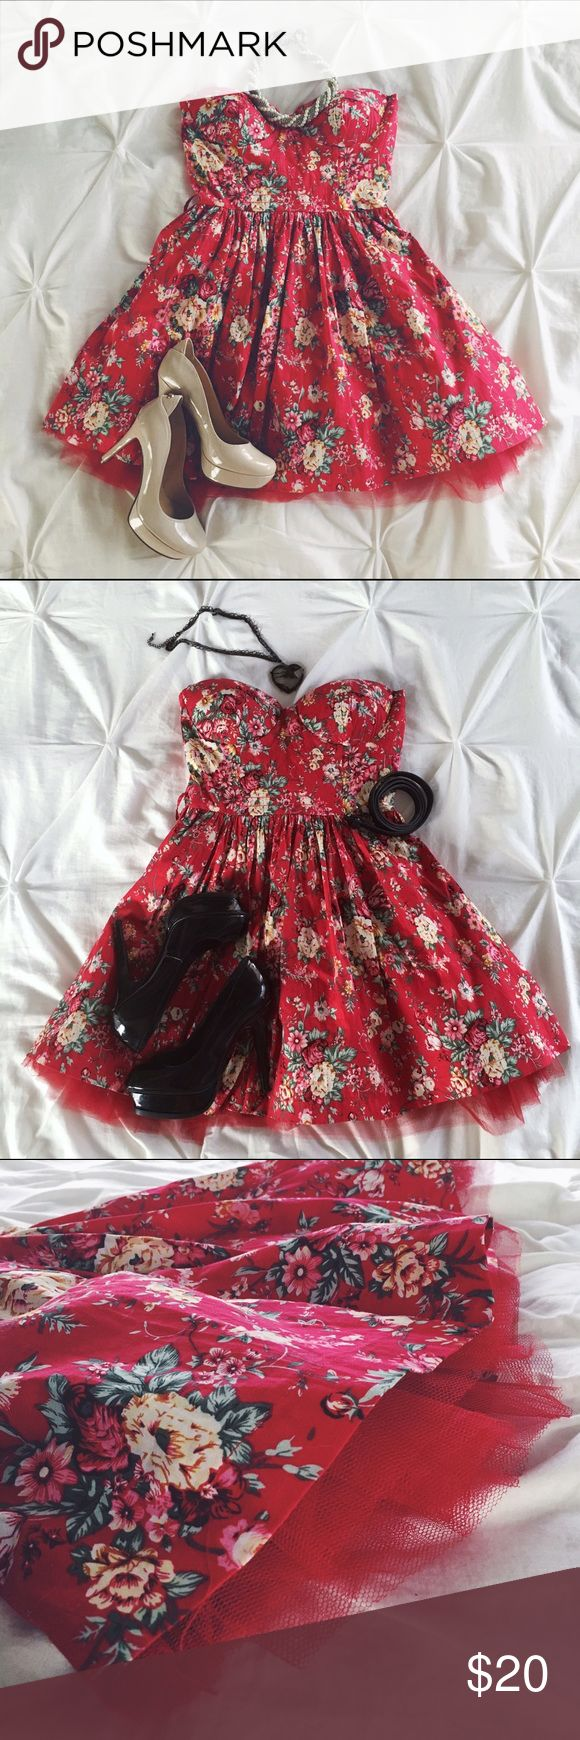 Betsey Johnson Look Red Floral Dress Red Floral Dress with sweetheart heart bodice and peek of tulle underskirt can be accessorized different ways. (Not included) Makes a cute Christmas or Valentine's dress. Not Betsey Johnson, just has the look. Black shoes and heart necklace for sale in separate listing. Betsey Johnson Dresses Strapless